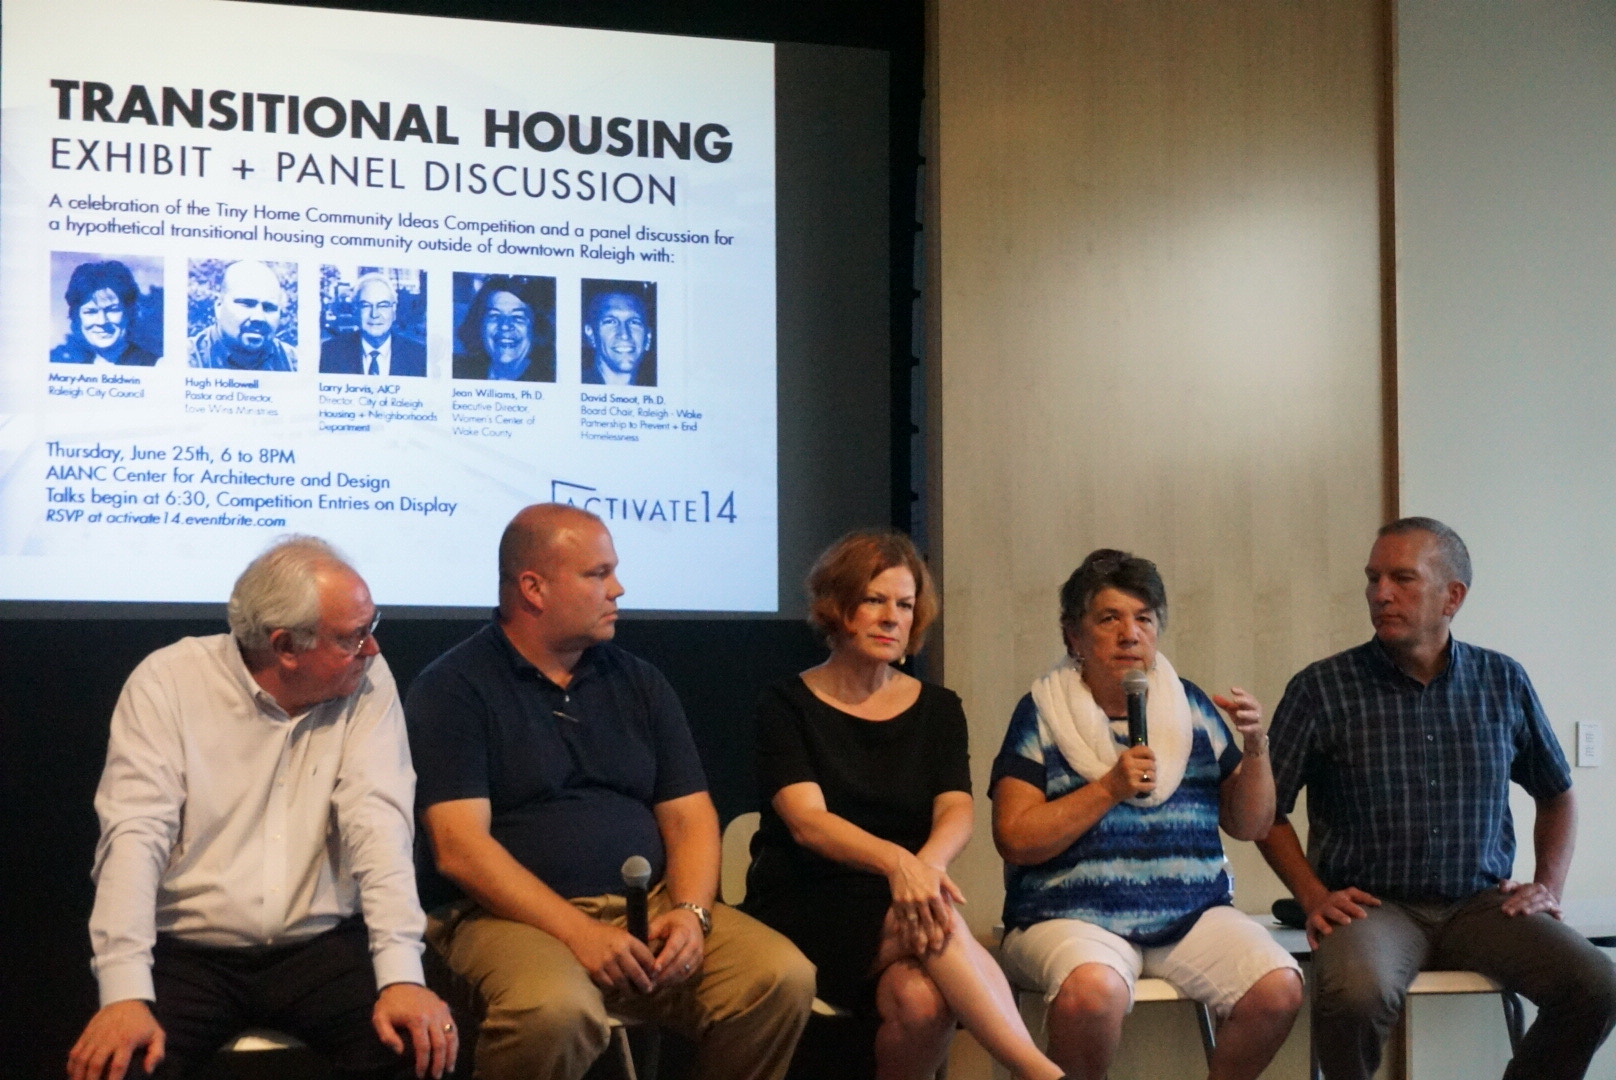 Transitional Housing Panel Discussion, Raleigh, North Carolina, United States